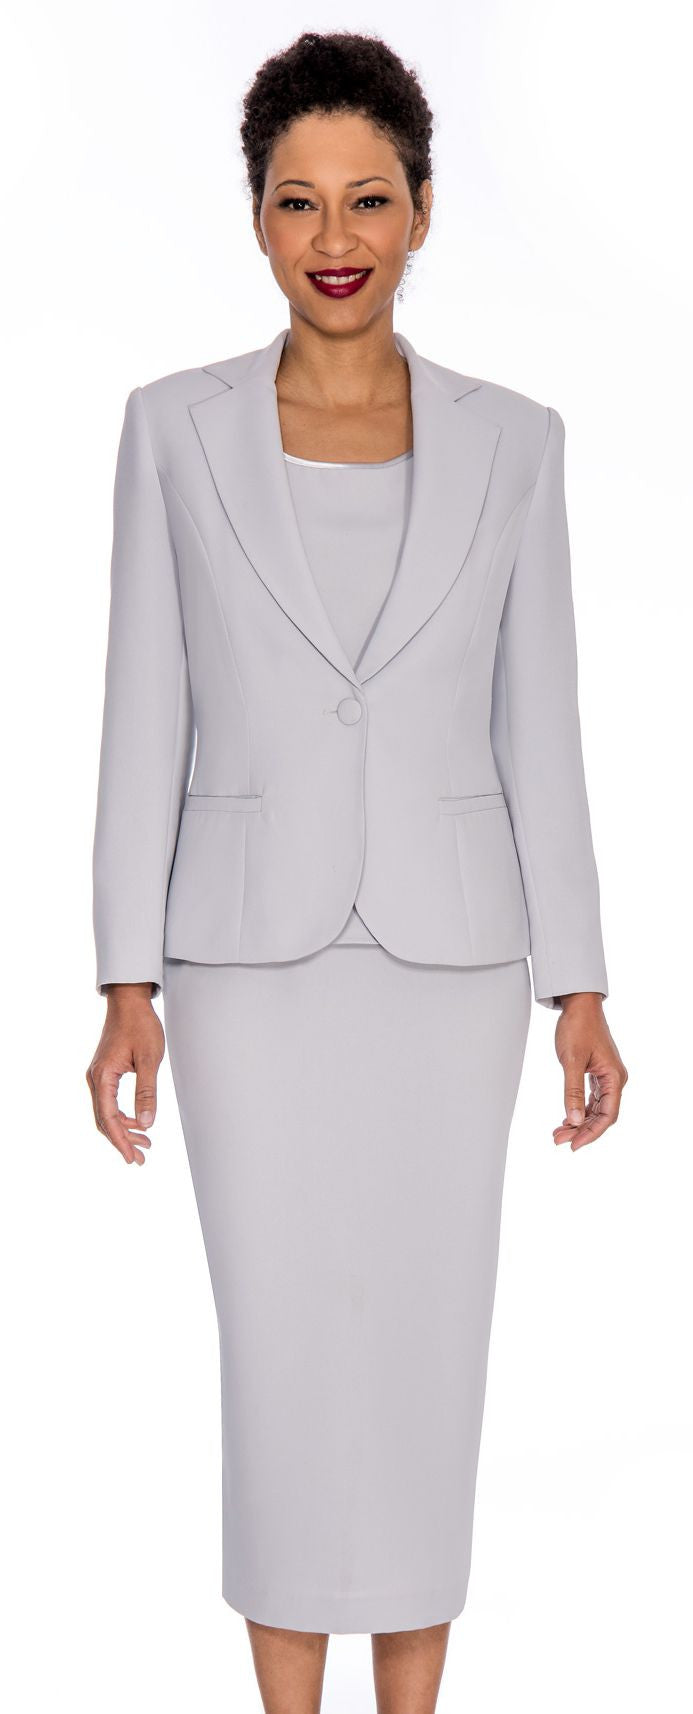 Giovanna Church Suit 0823-Silver - Church Suits For Less